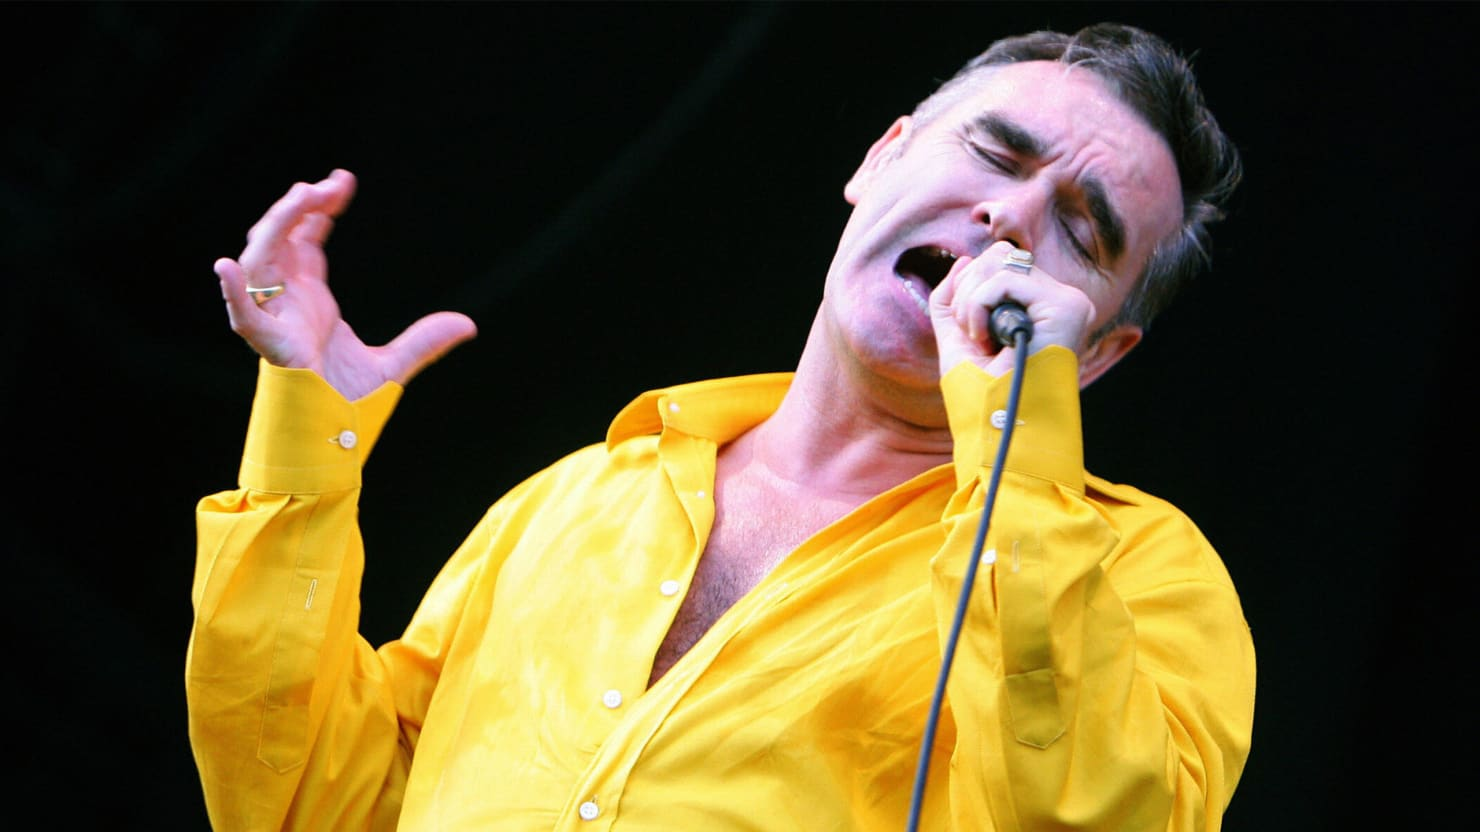 Morrissey on How Obama 'Has Meant Nothing' and Trump 'Can't Be Allowed to Represent America'